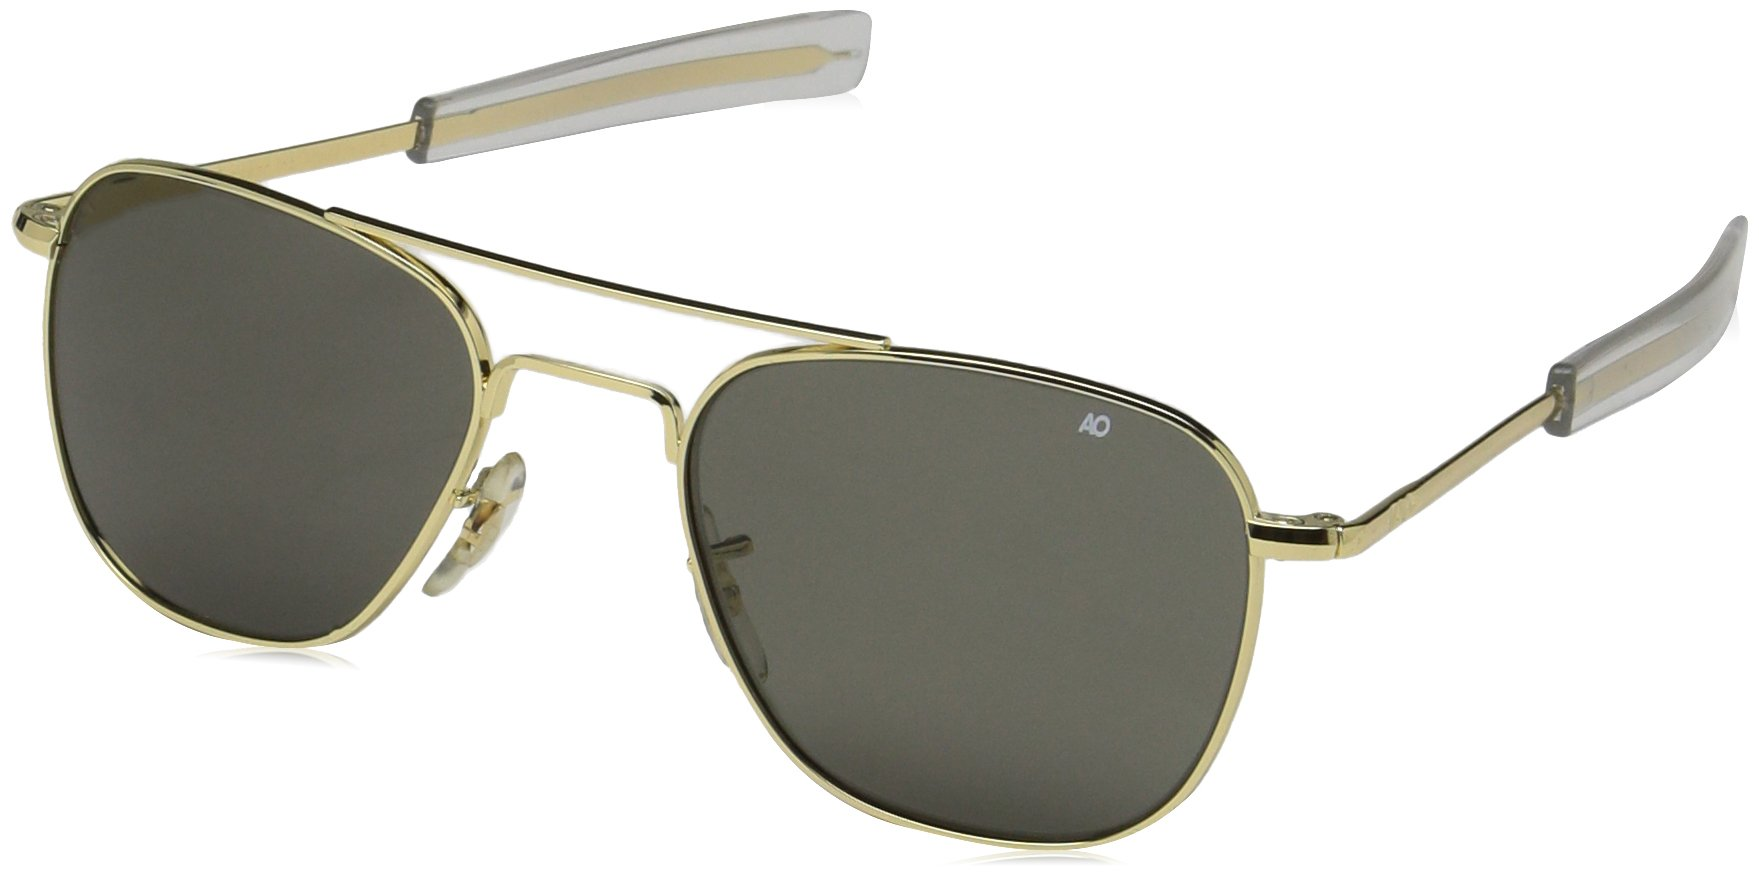 dd9ac4116c Galleon - AO Eyewear American Optical - Original Pilot Aviator Sunglasses  With Bayonet Temple And Gold Frame